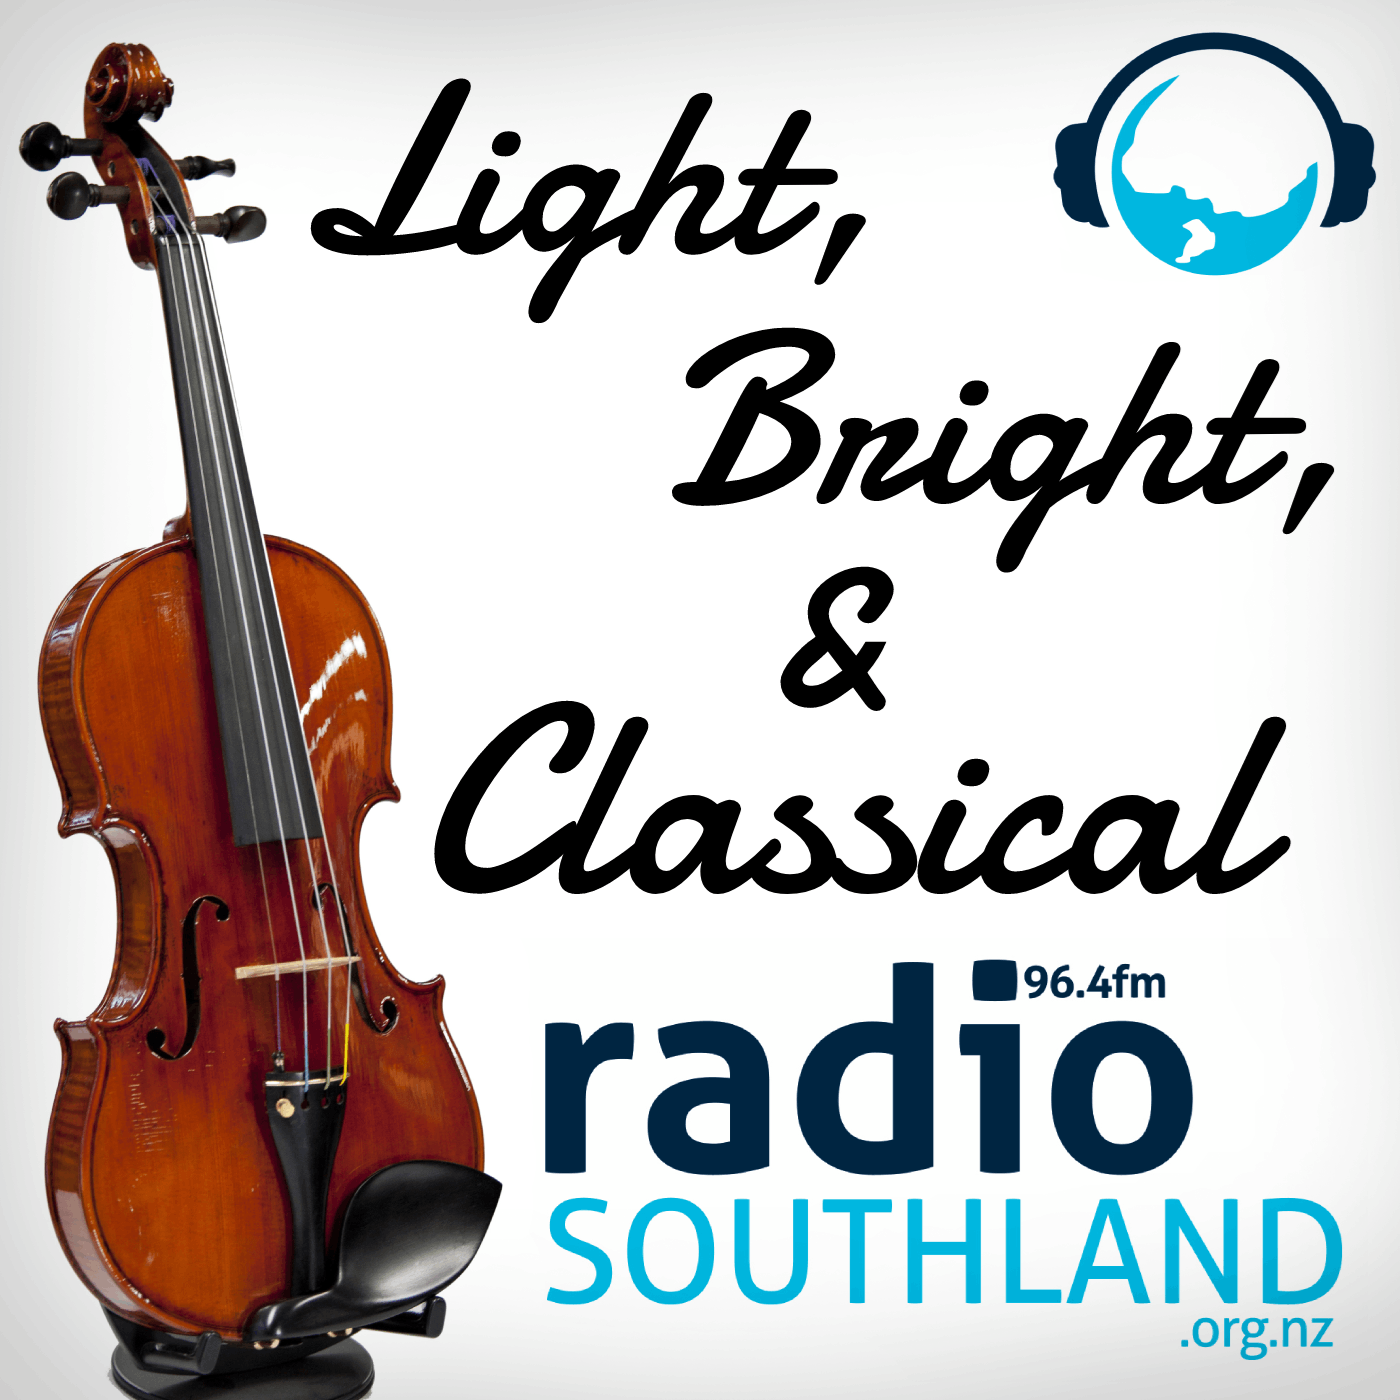 Light, Bright, and Classical - Pat Corkery-23-08-2019